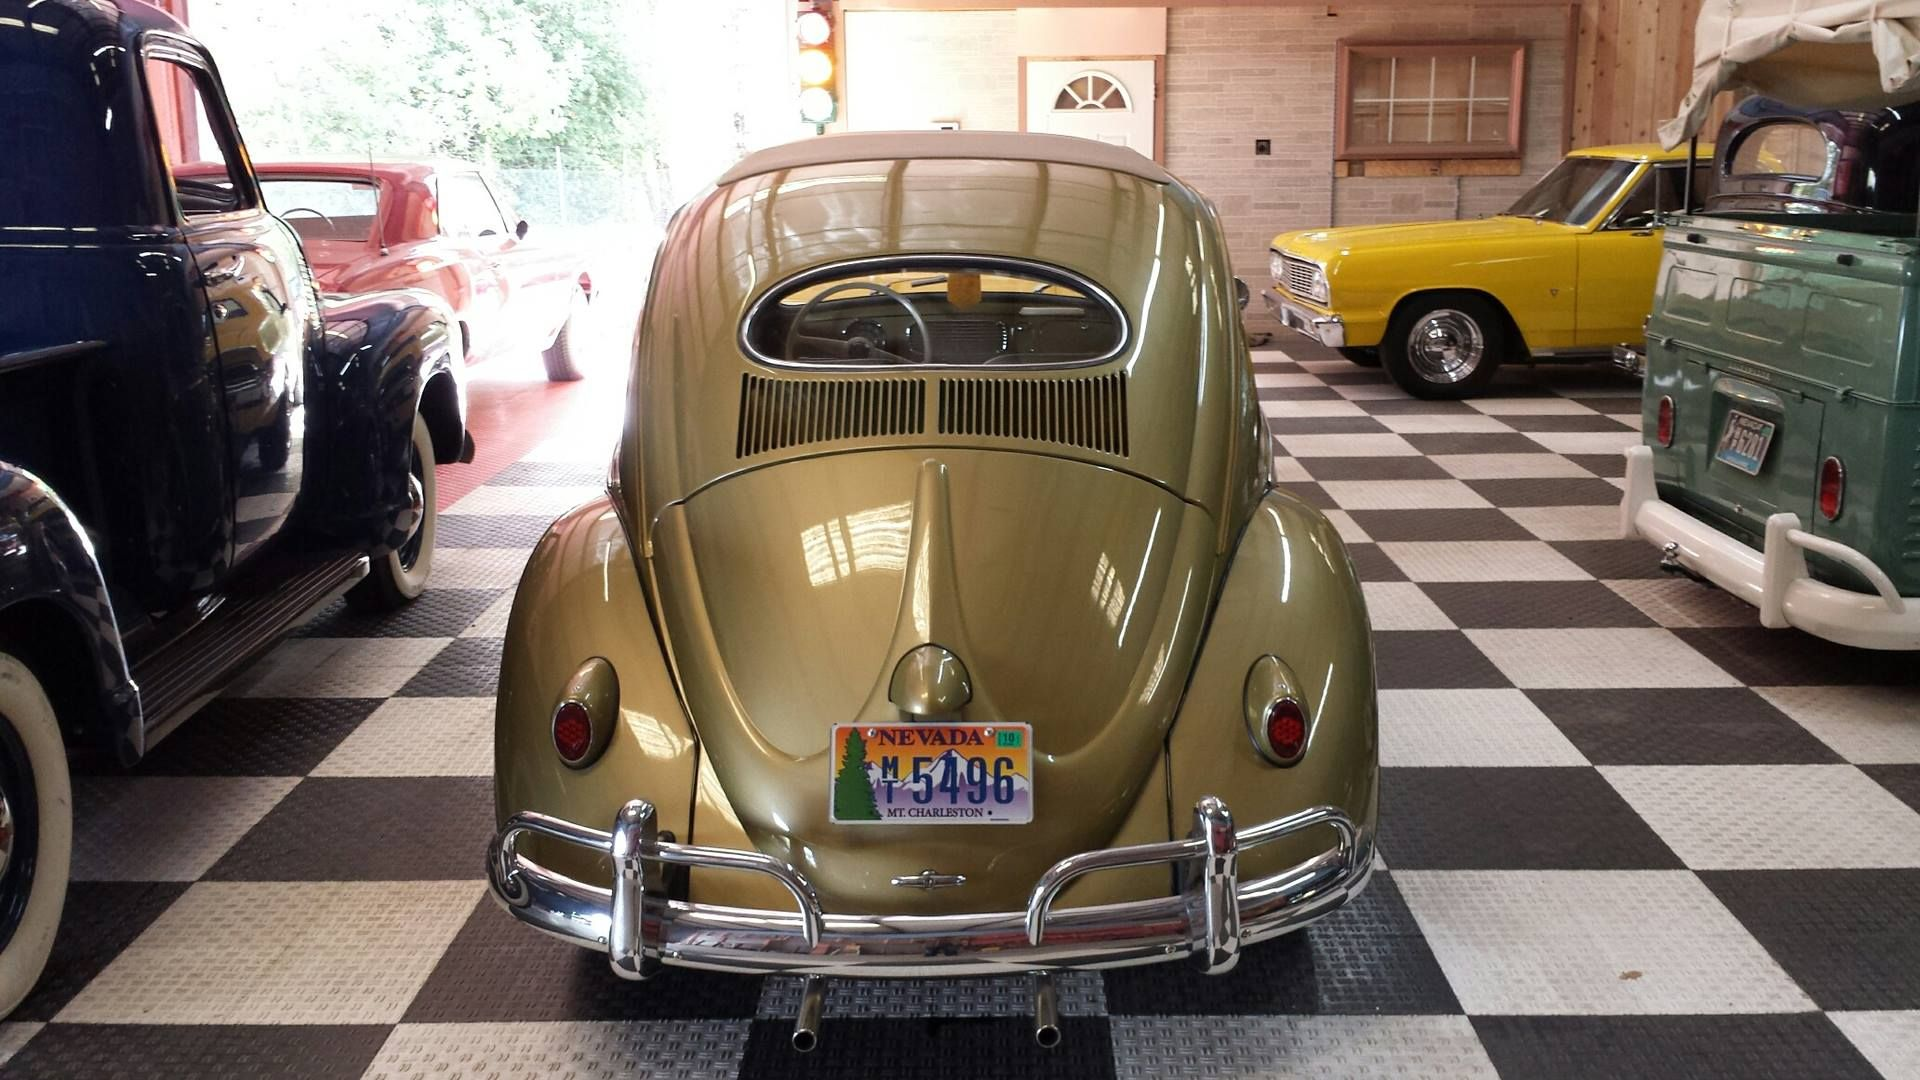 1957 Vw Beetle Ragtop Oval Window Hot Rides Vw Beetles Beetle